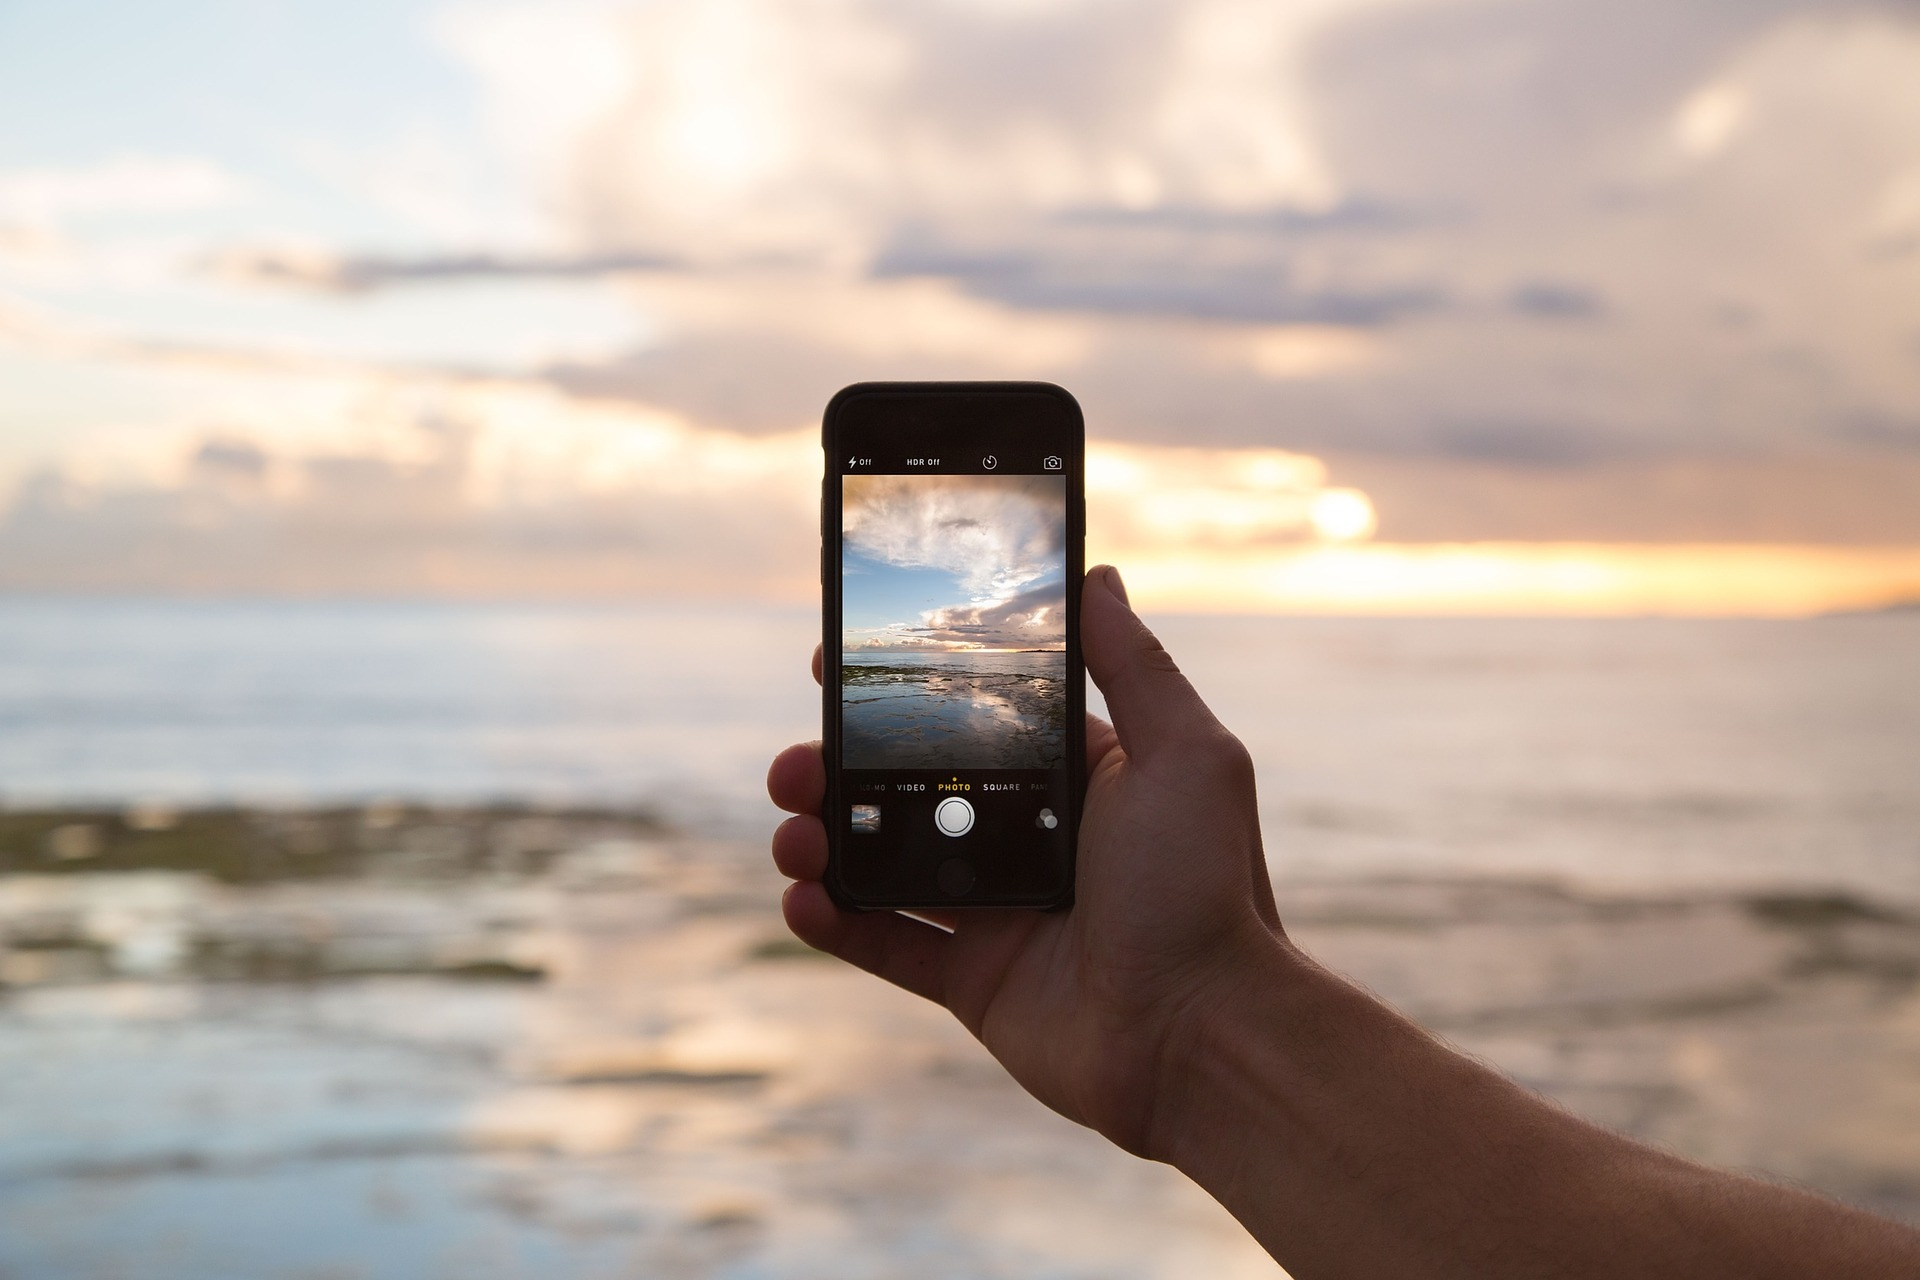 Photograph of a smartphone taking a photo of a sunset on a beach.